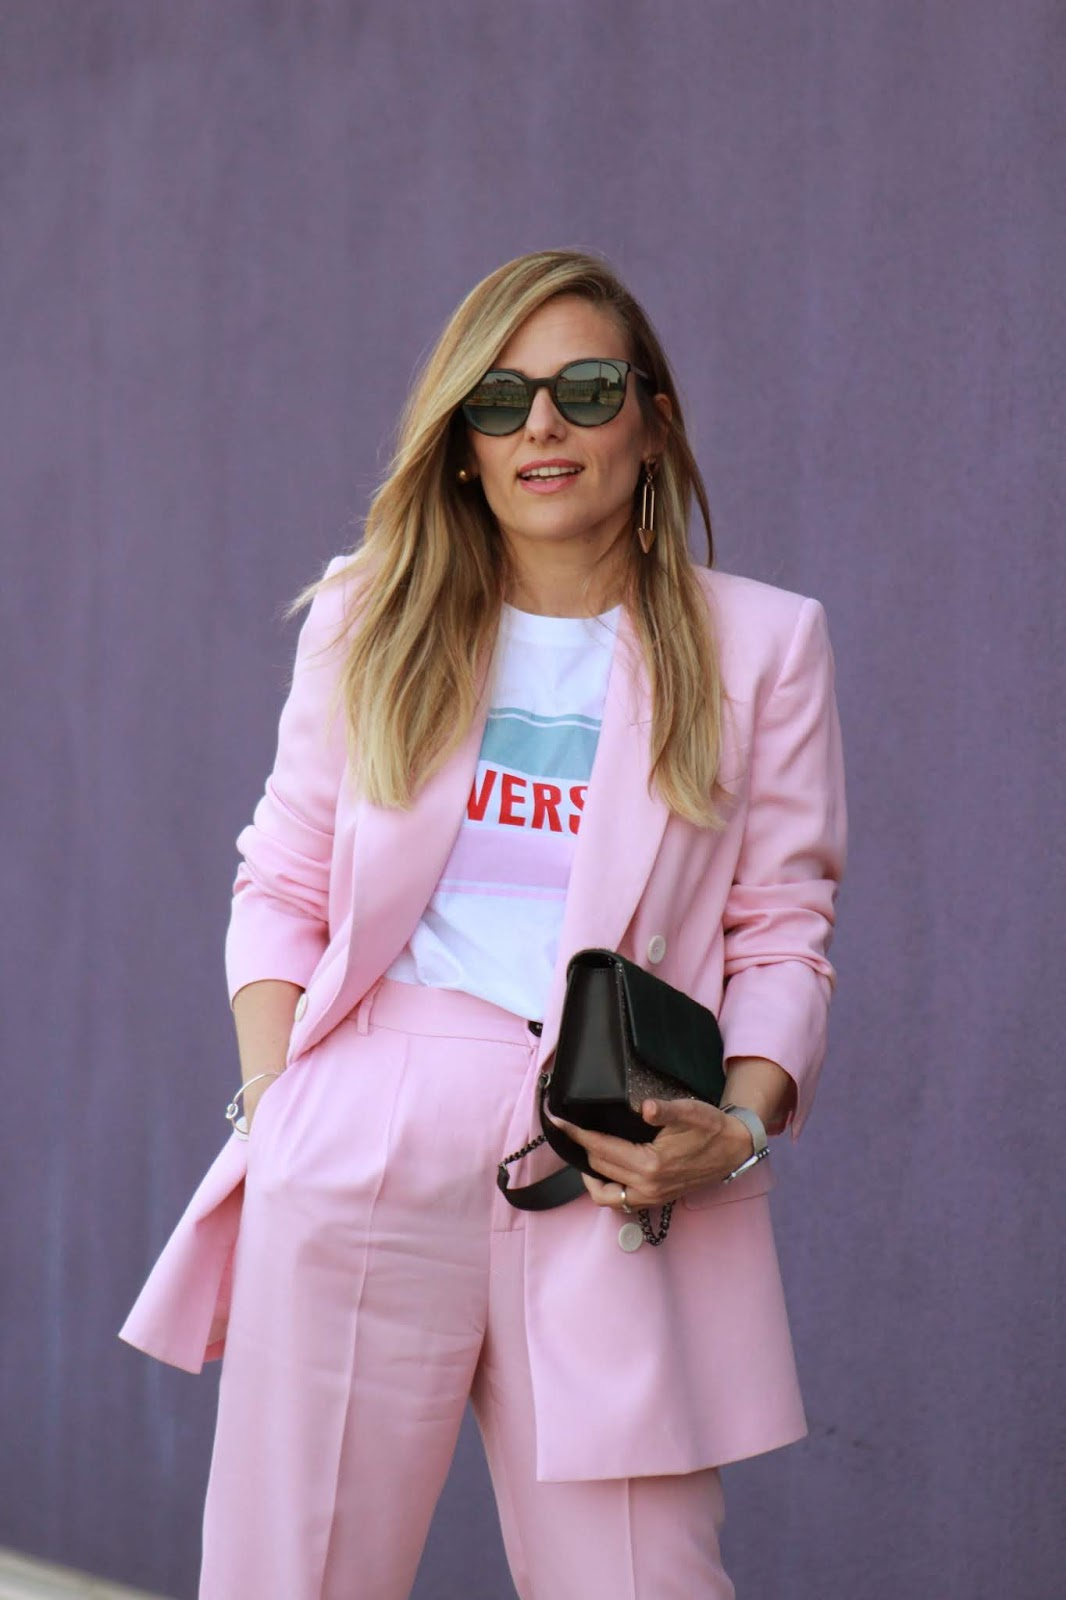 Eniwhere Fashion - Come indossare un blazer rosa